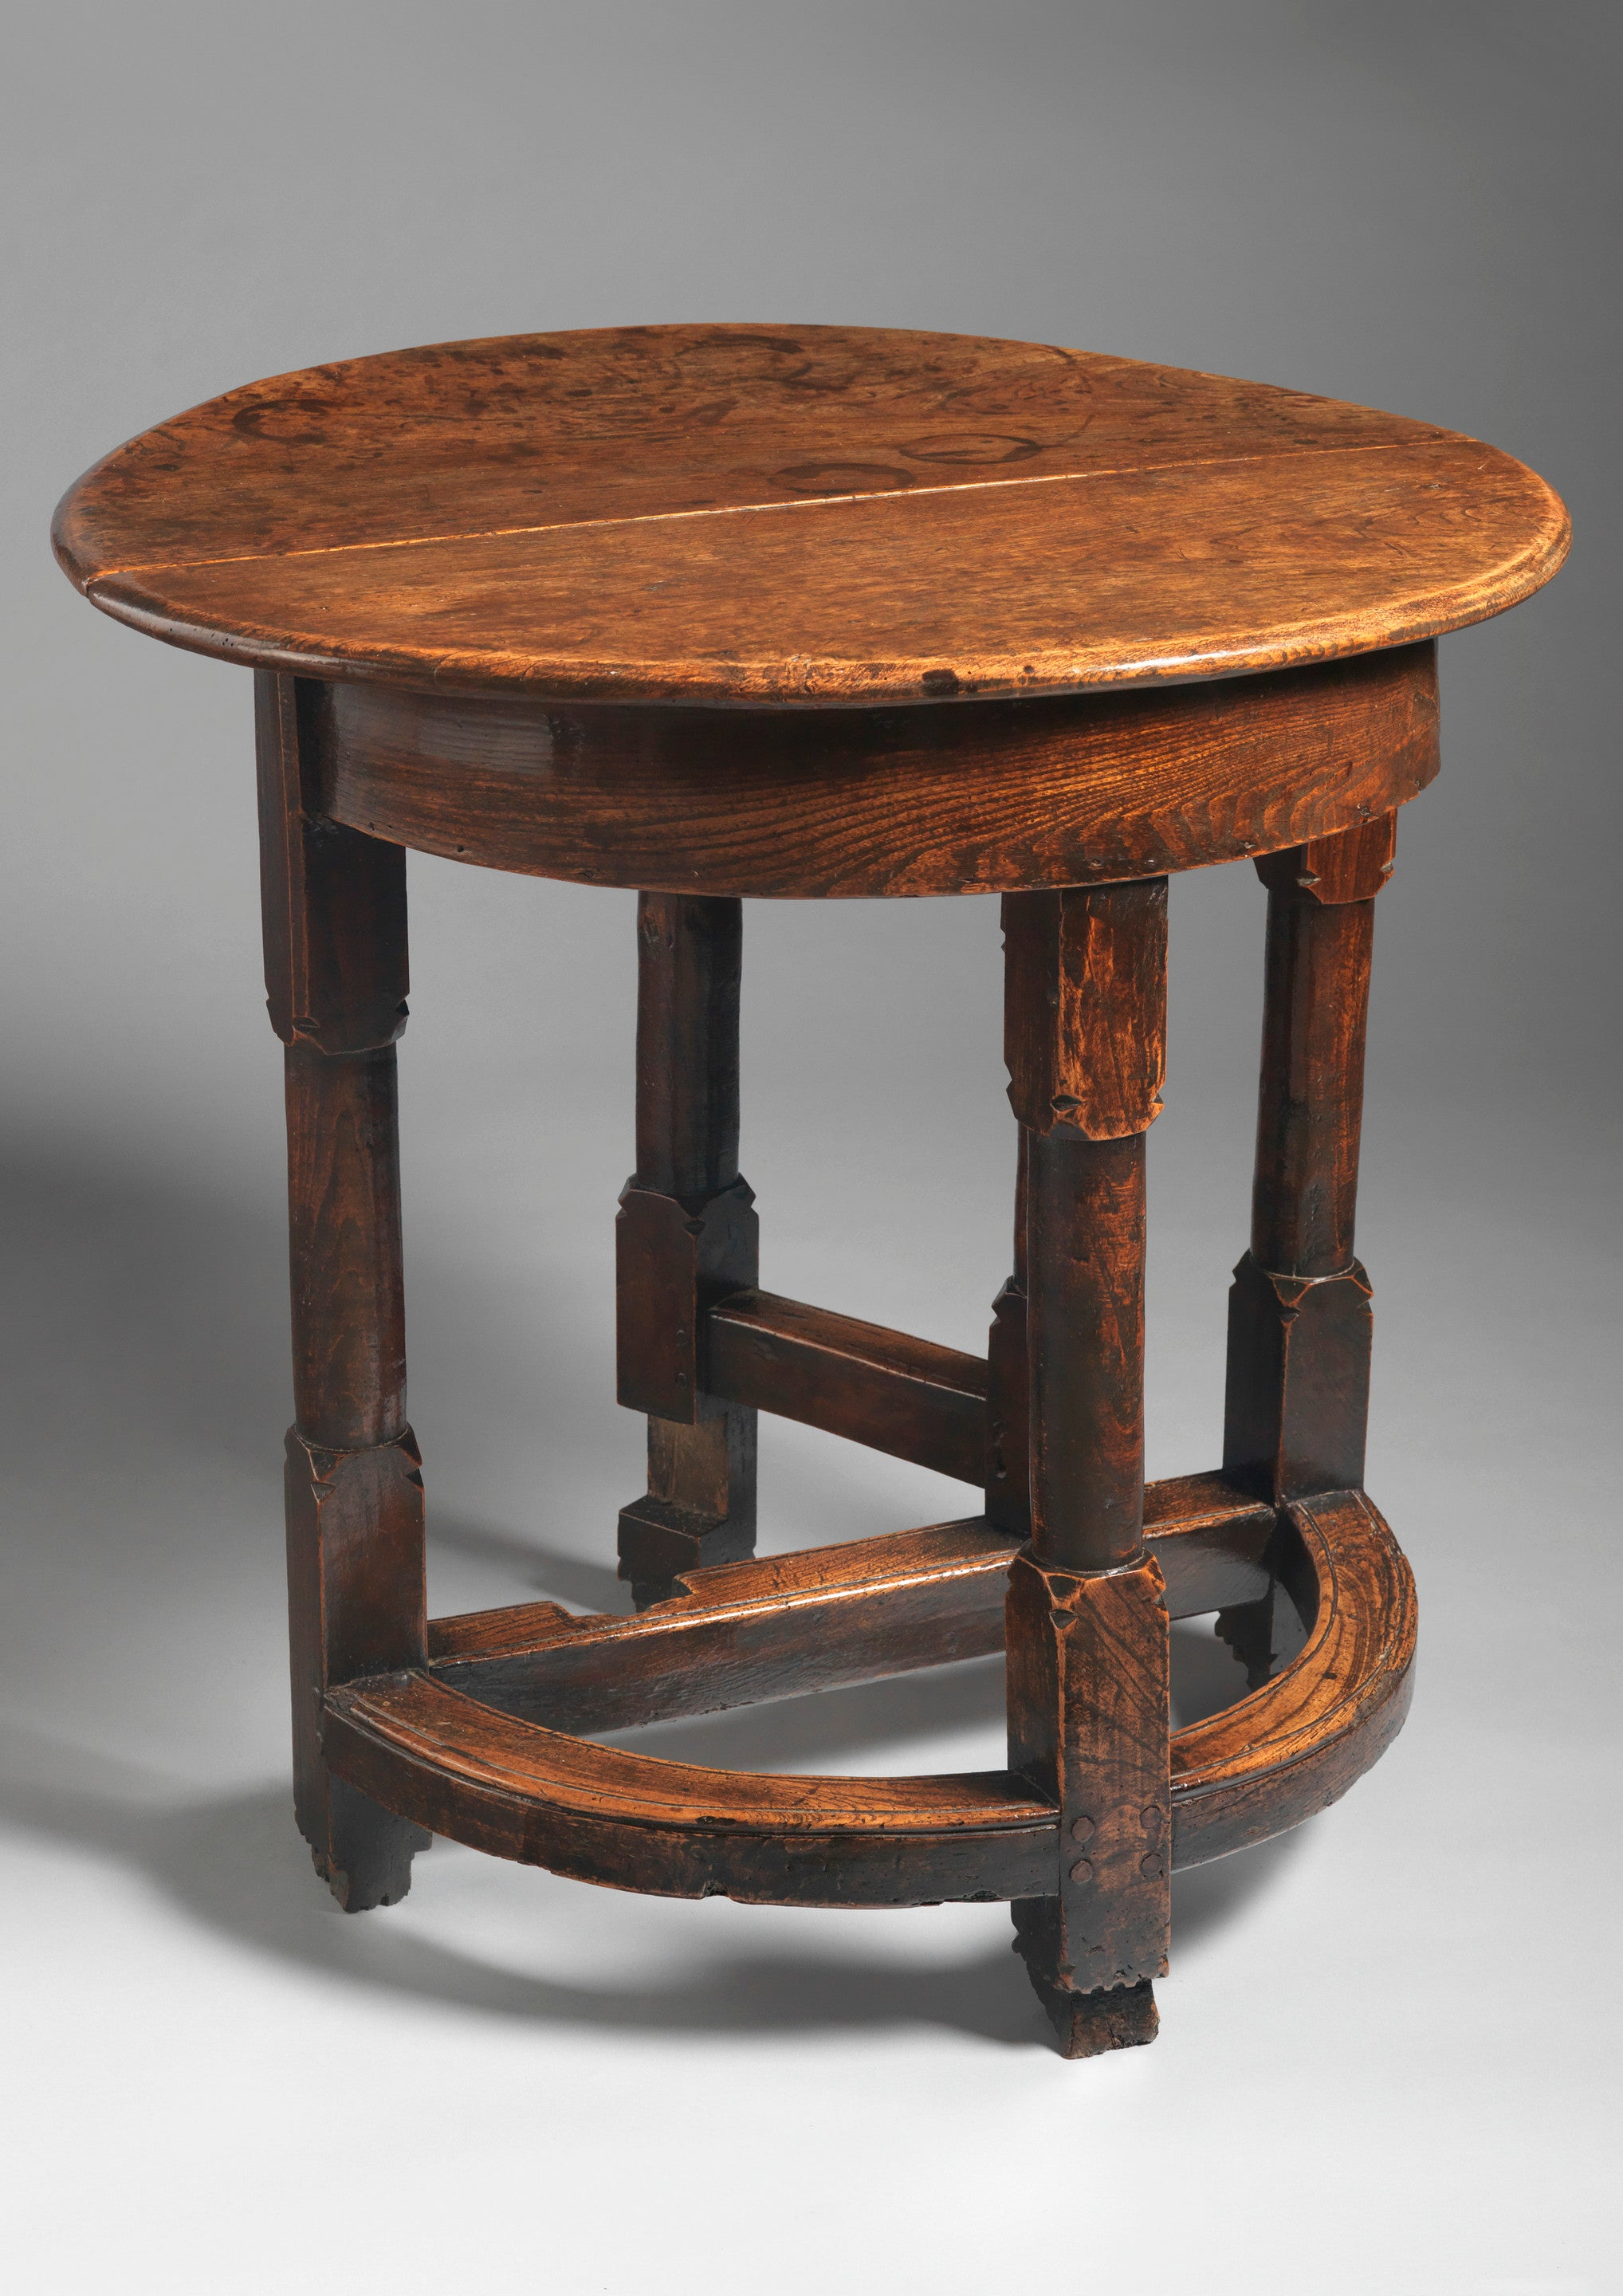 Exceptional William and Mary Period Folding Livery Table